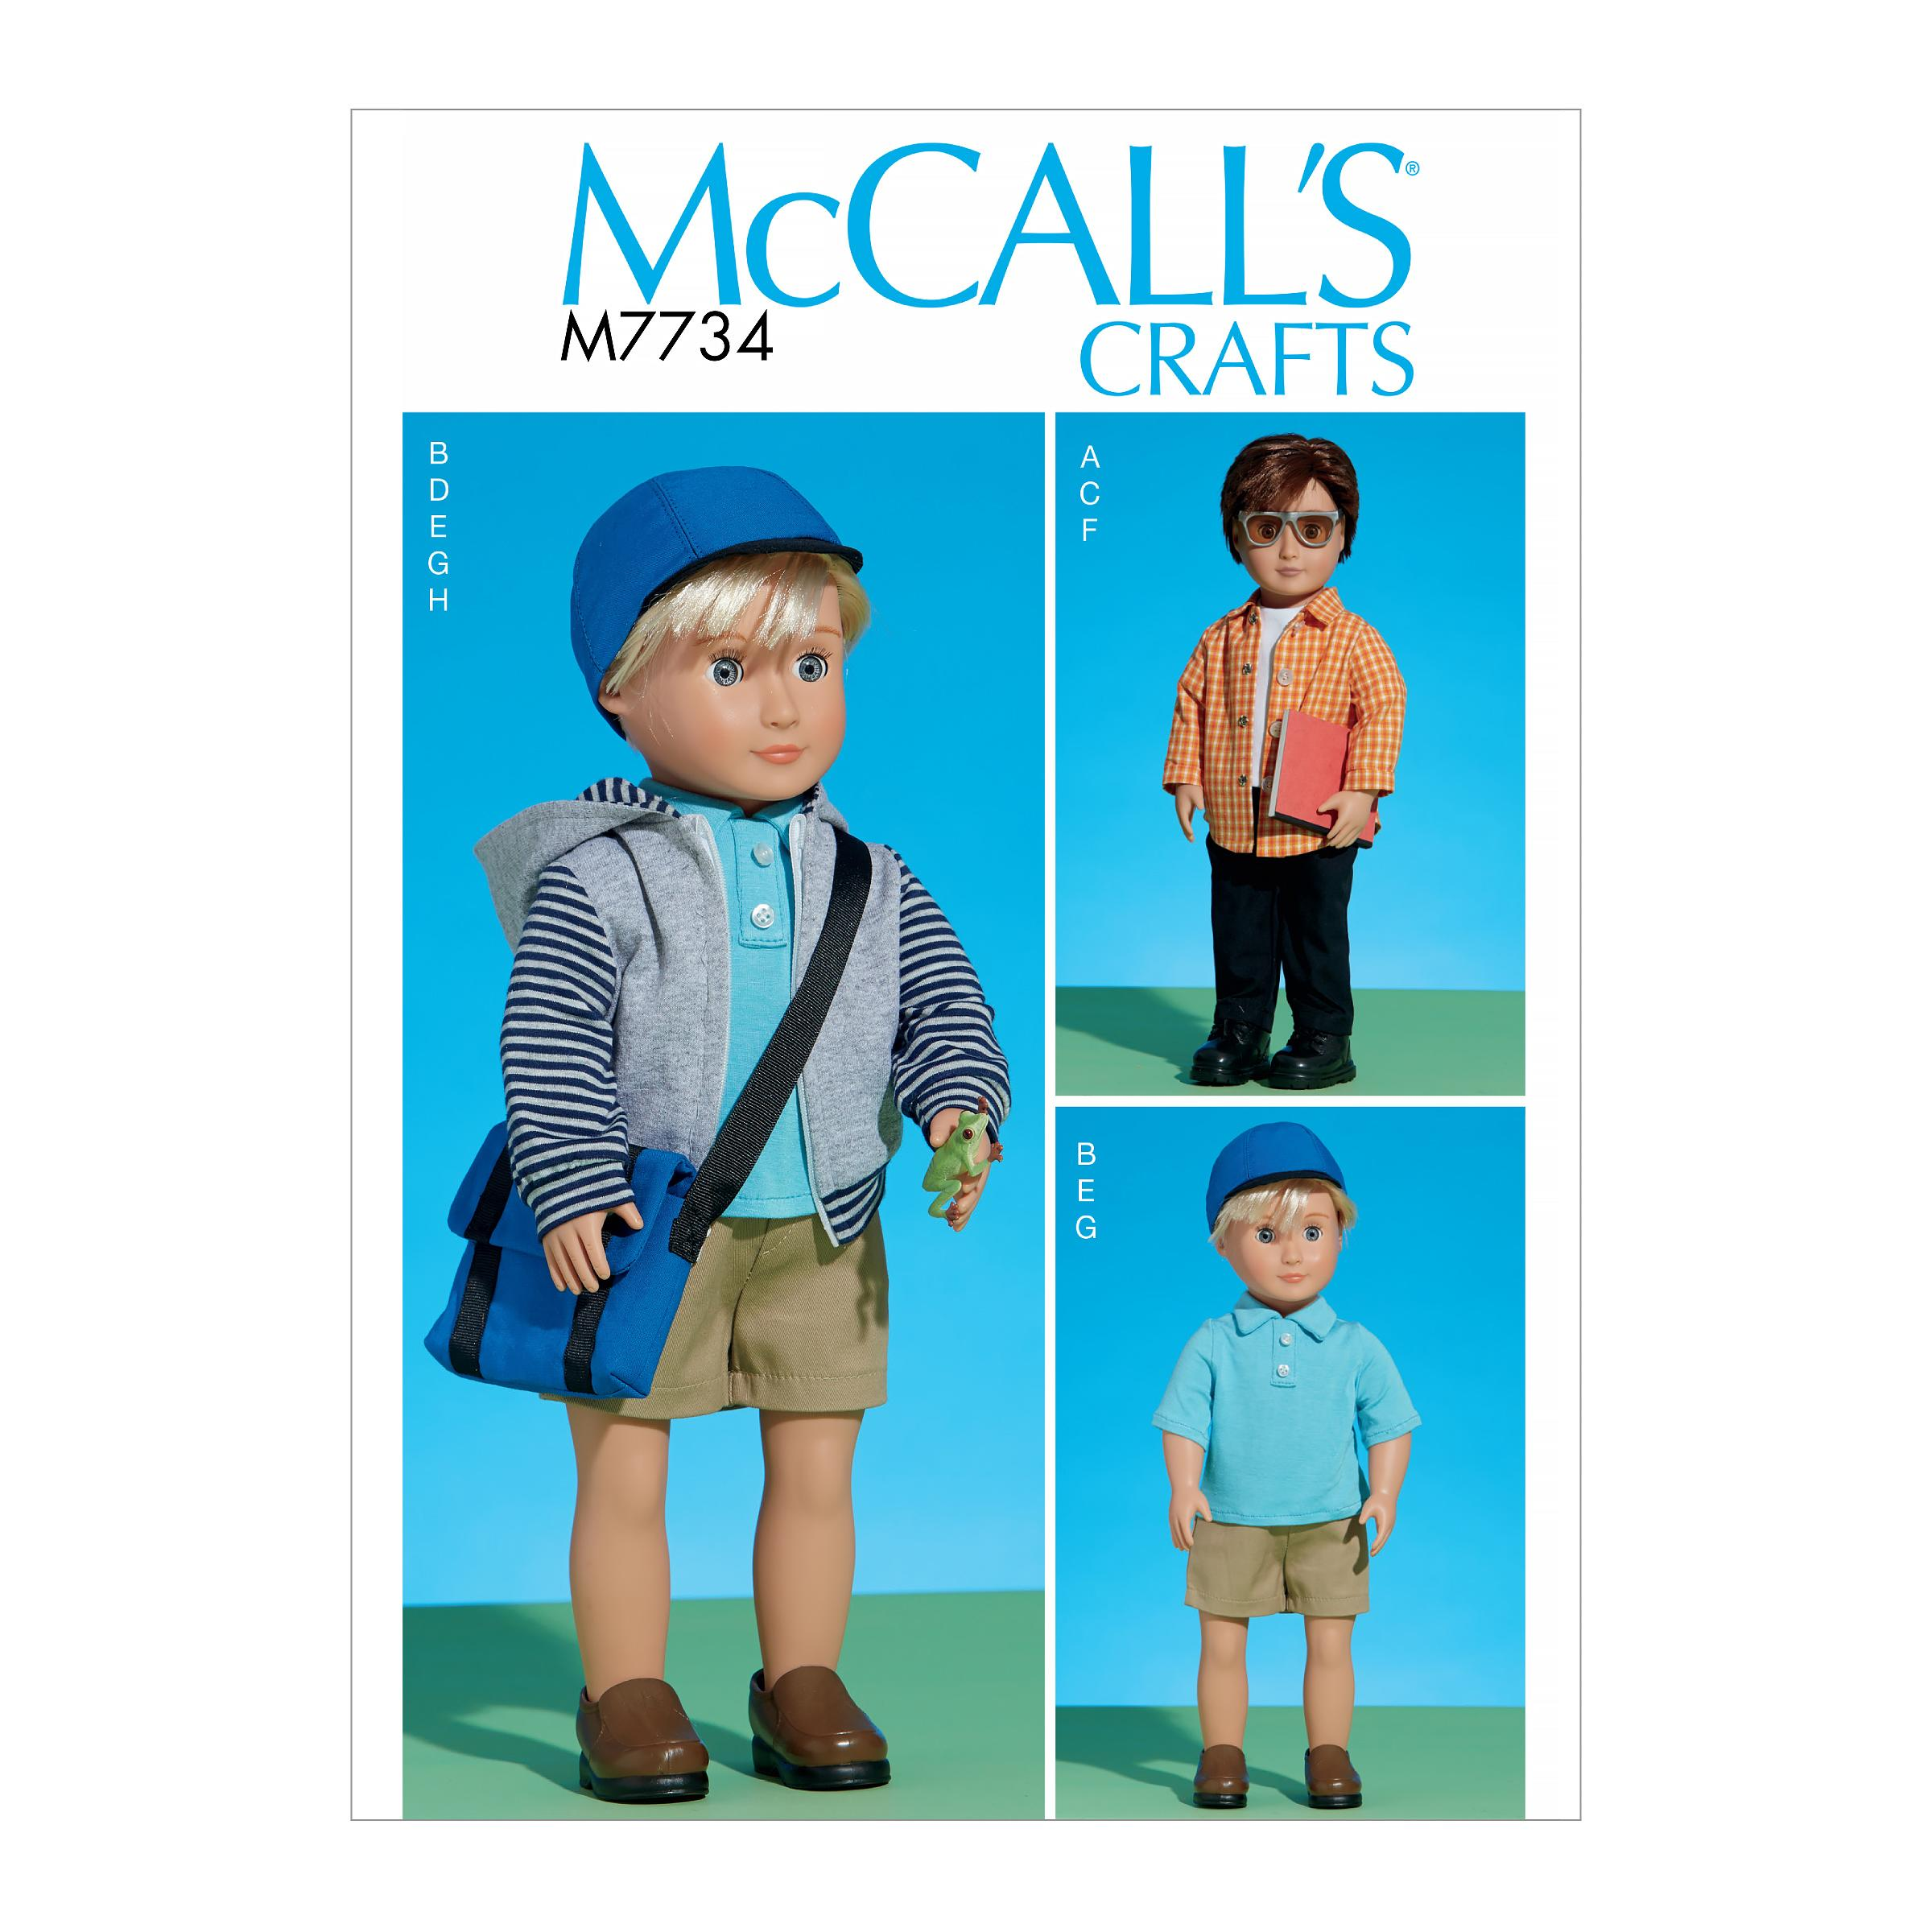 McCalls M7734 Crafts Dolls & Toys